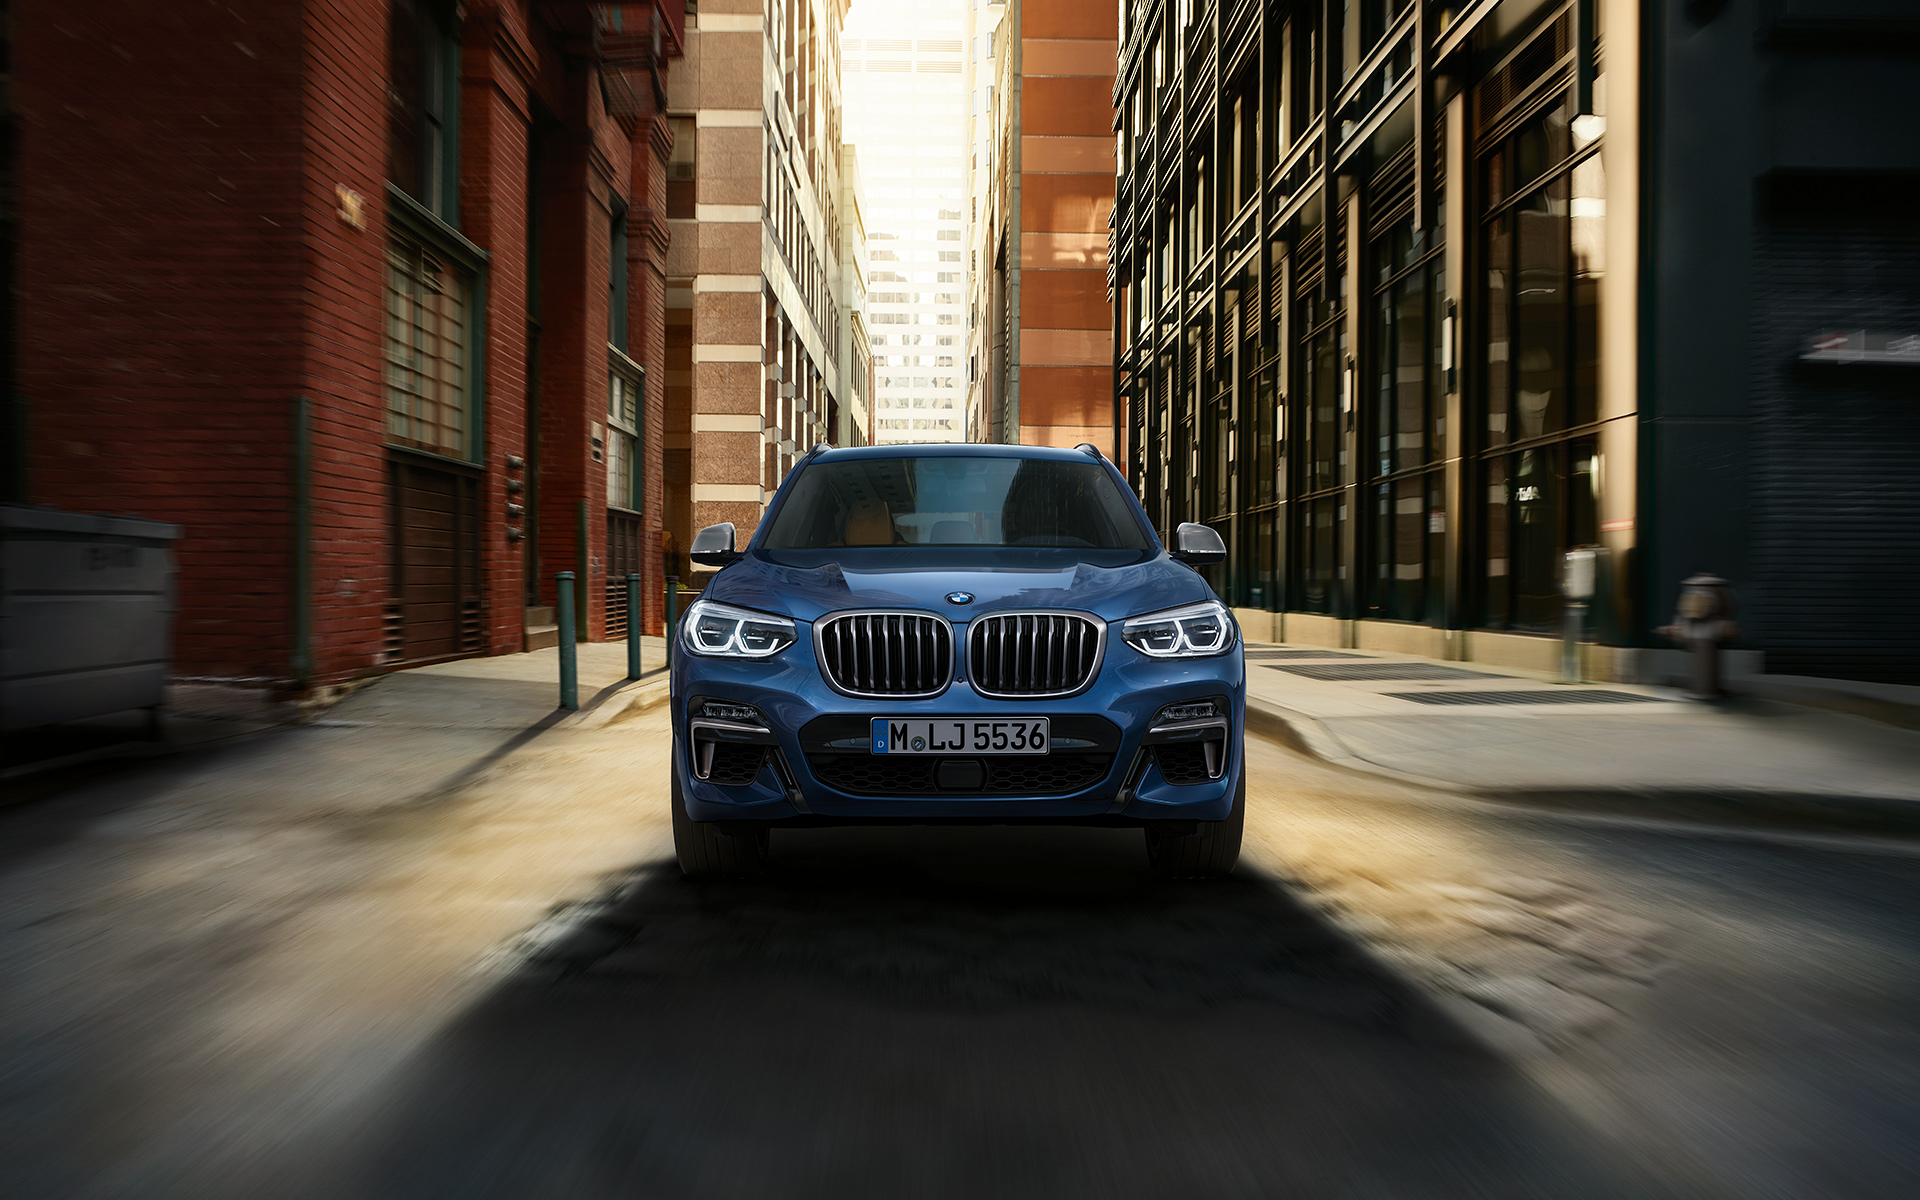 BMW X3 - Front View city driving